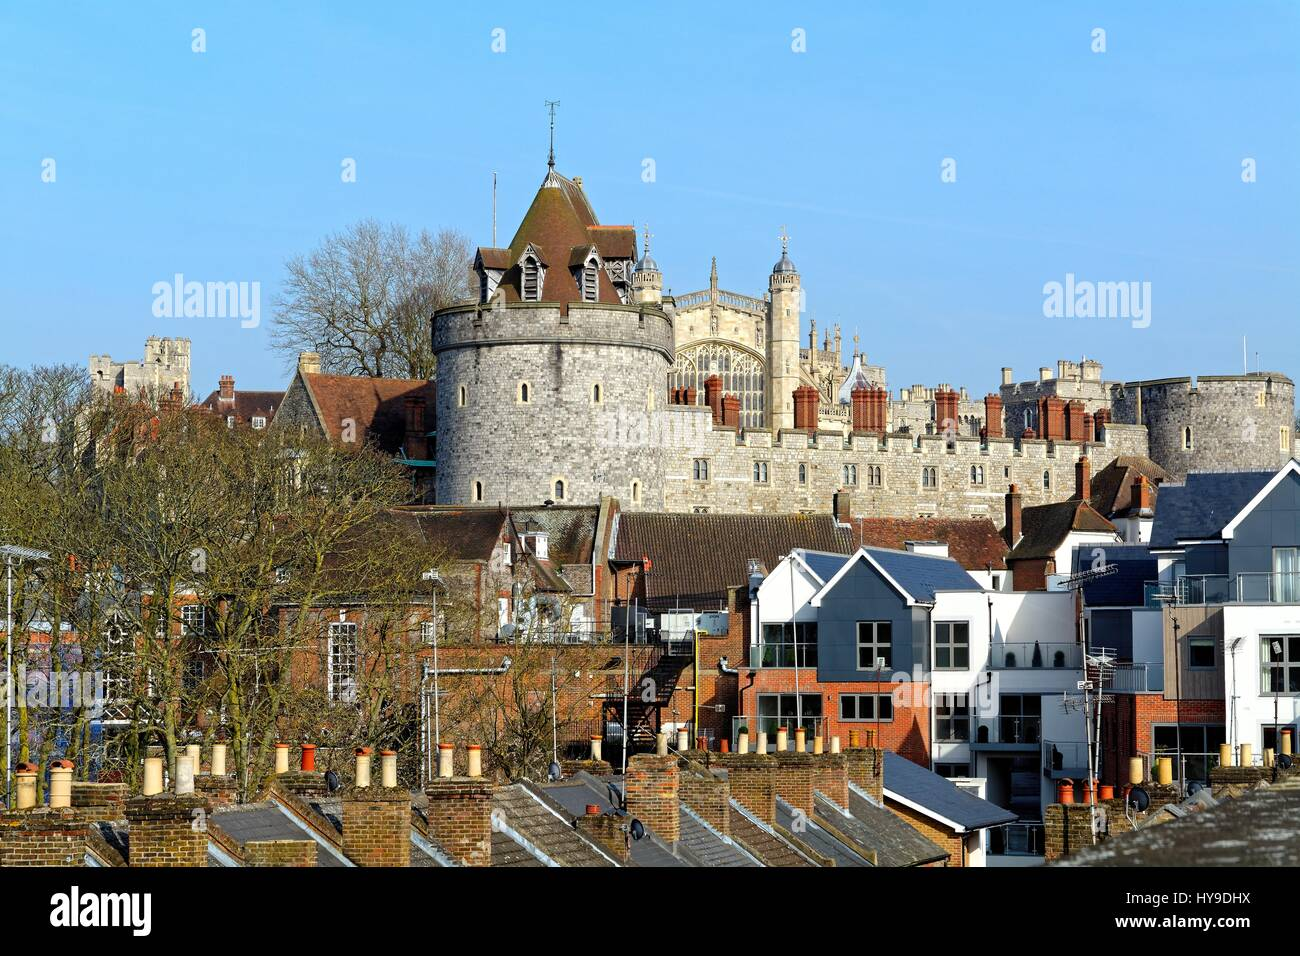 Windsor Castle on skyline of town centre Berkshire UK - Stock Image